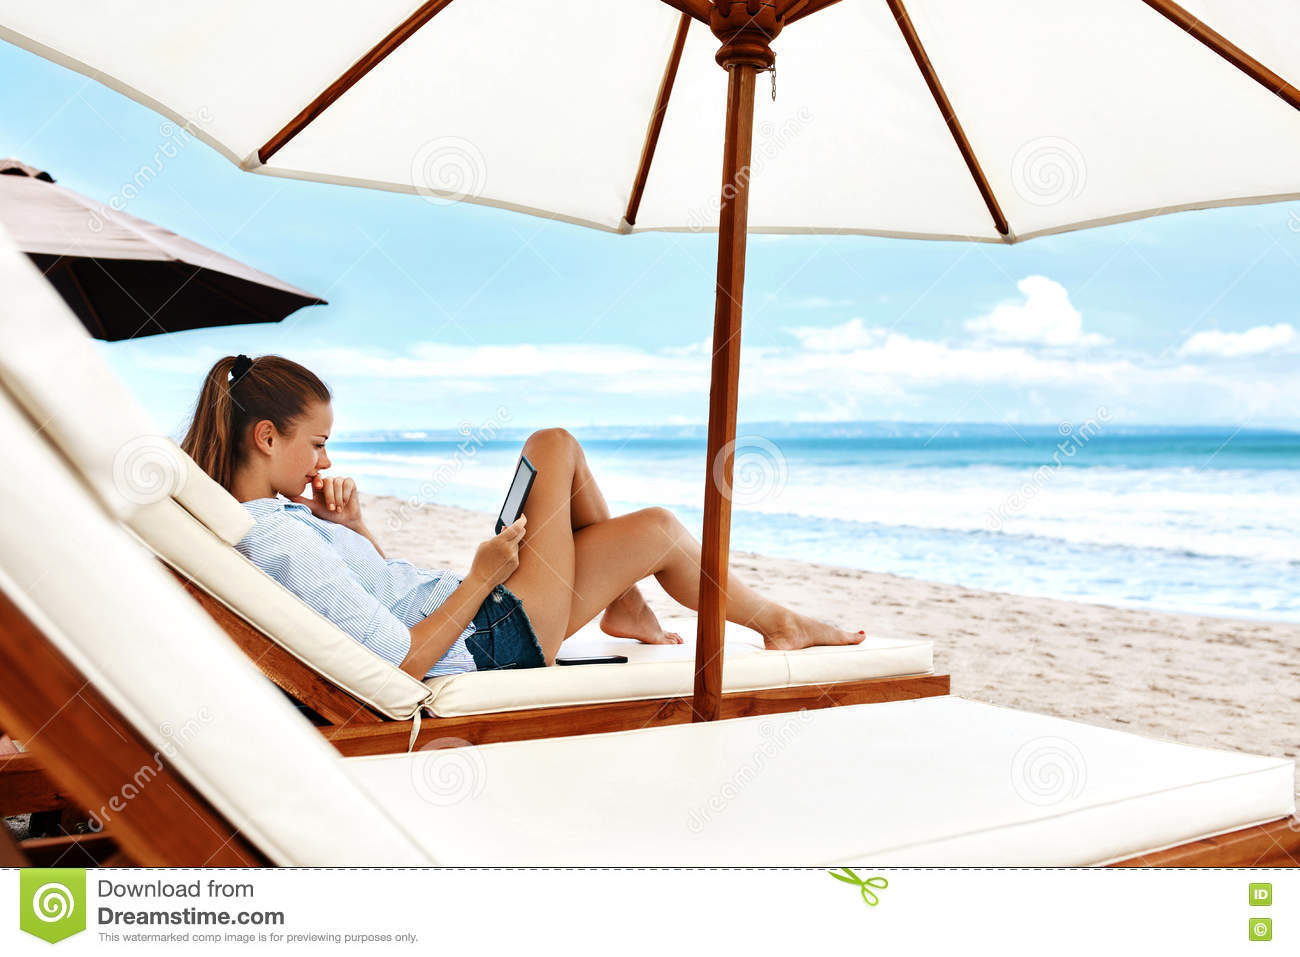 Summer Relaxation. Woman Reading, Relaxing On Beach. Summertime